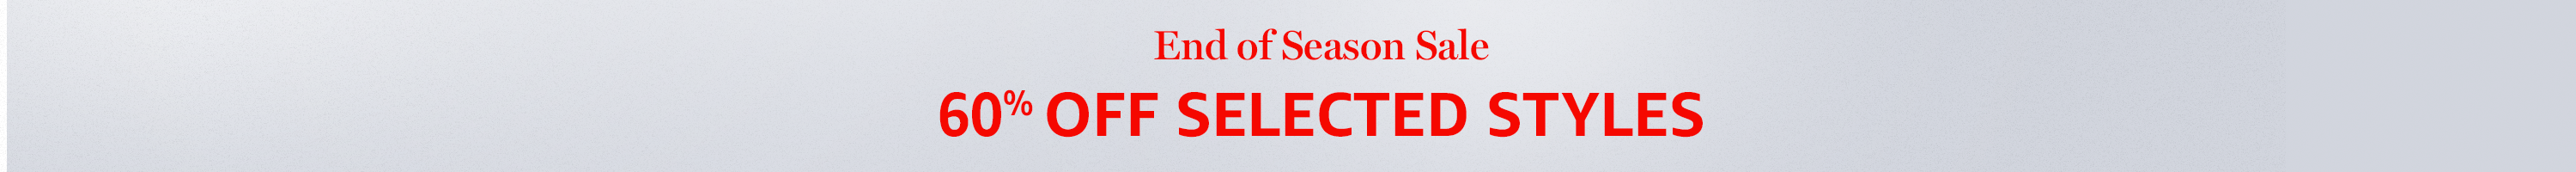 End of Season Sale: 40% off selected styles